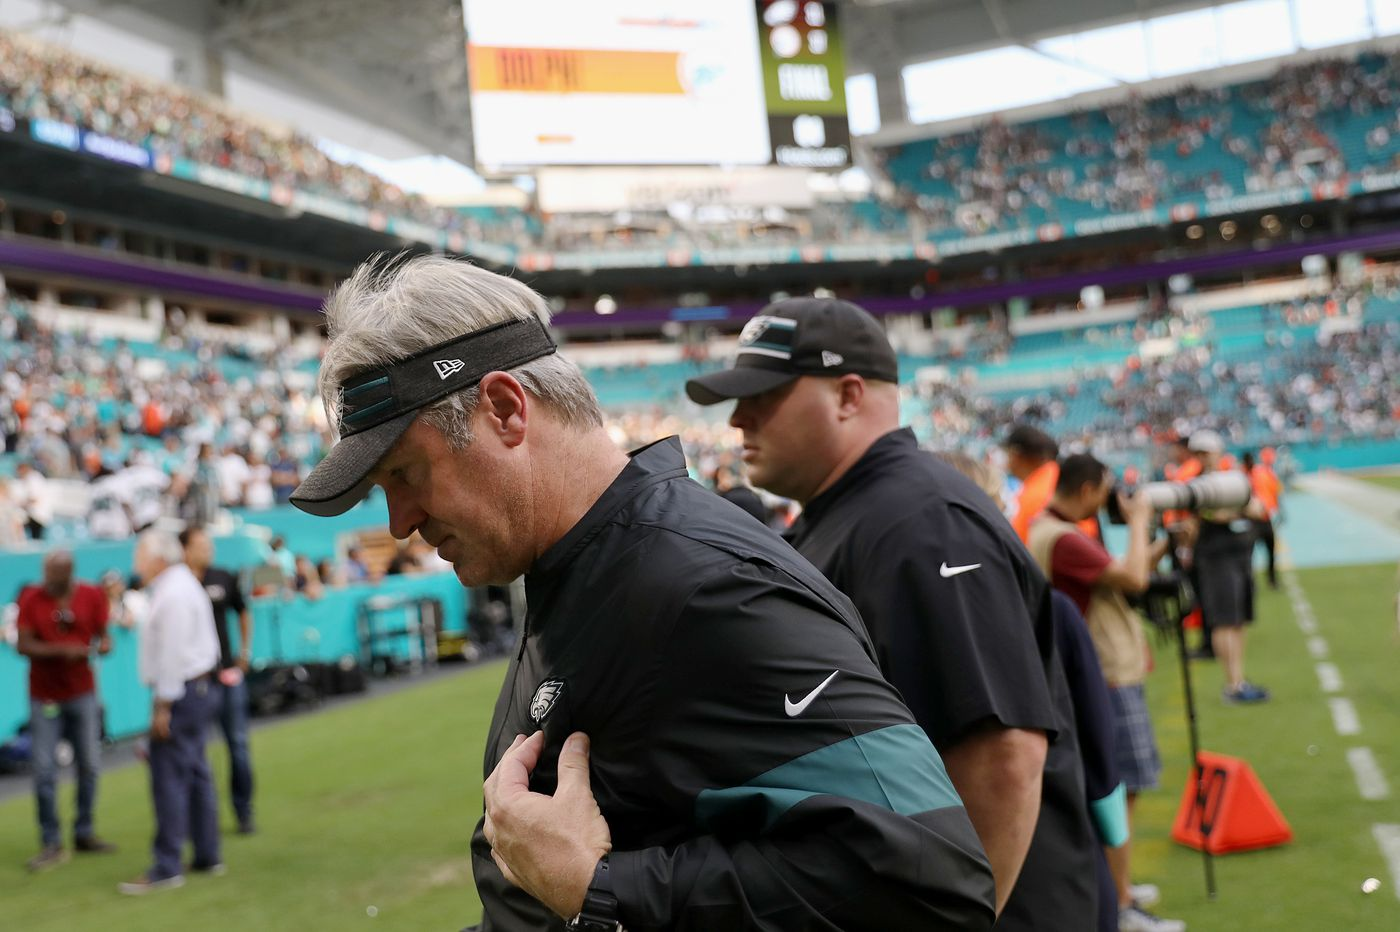 Eagles-Dolphins, what we learned: Coaching and personnel changes are needed